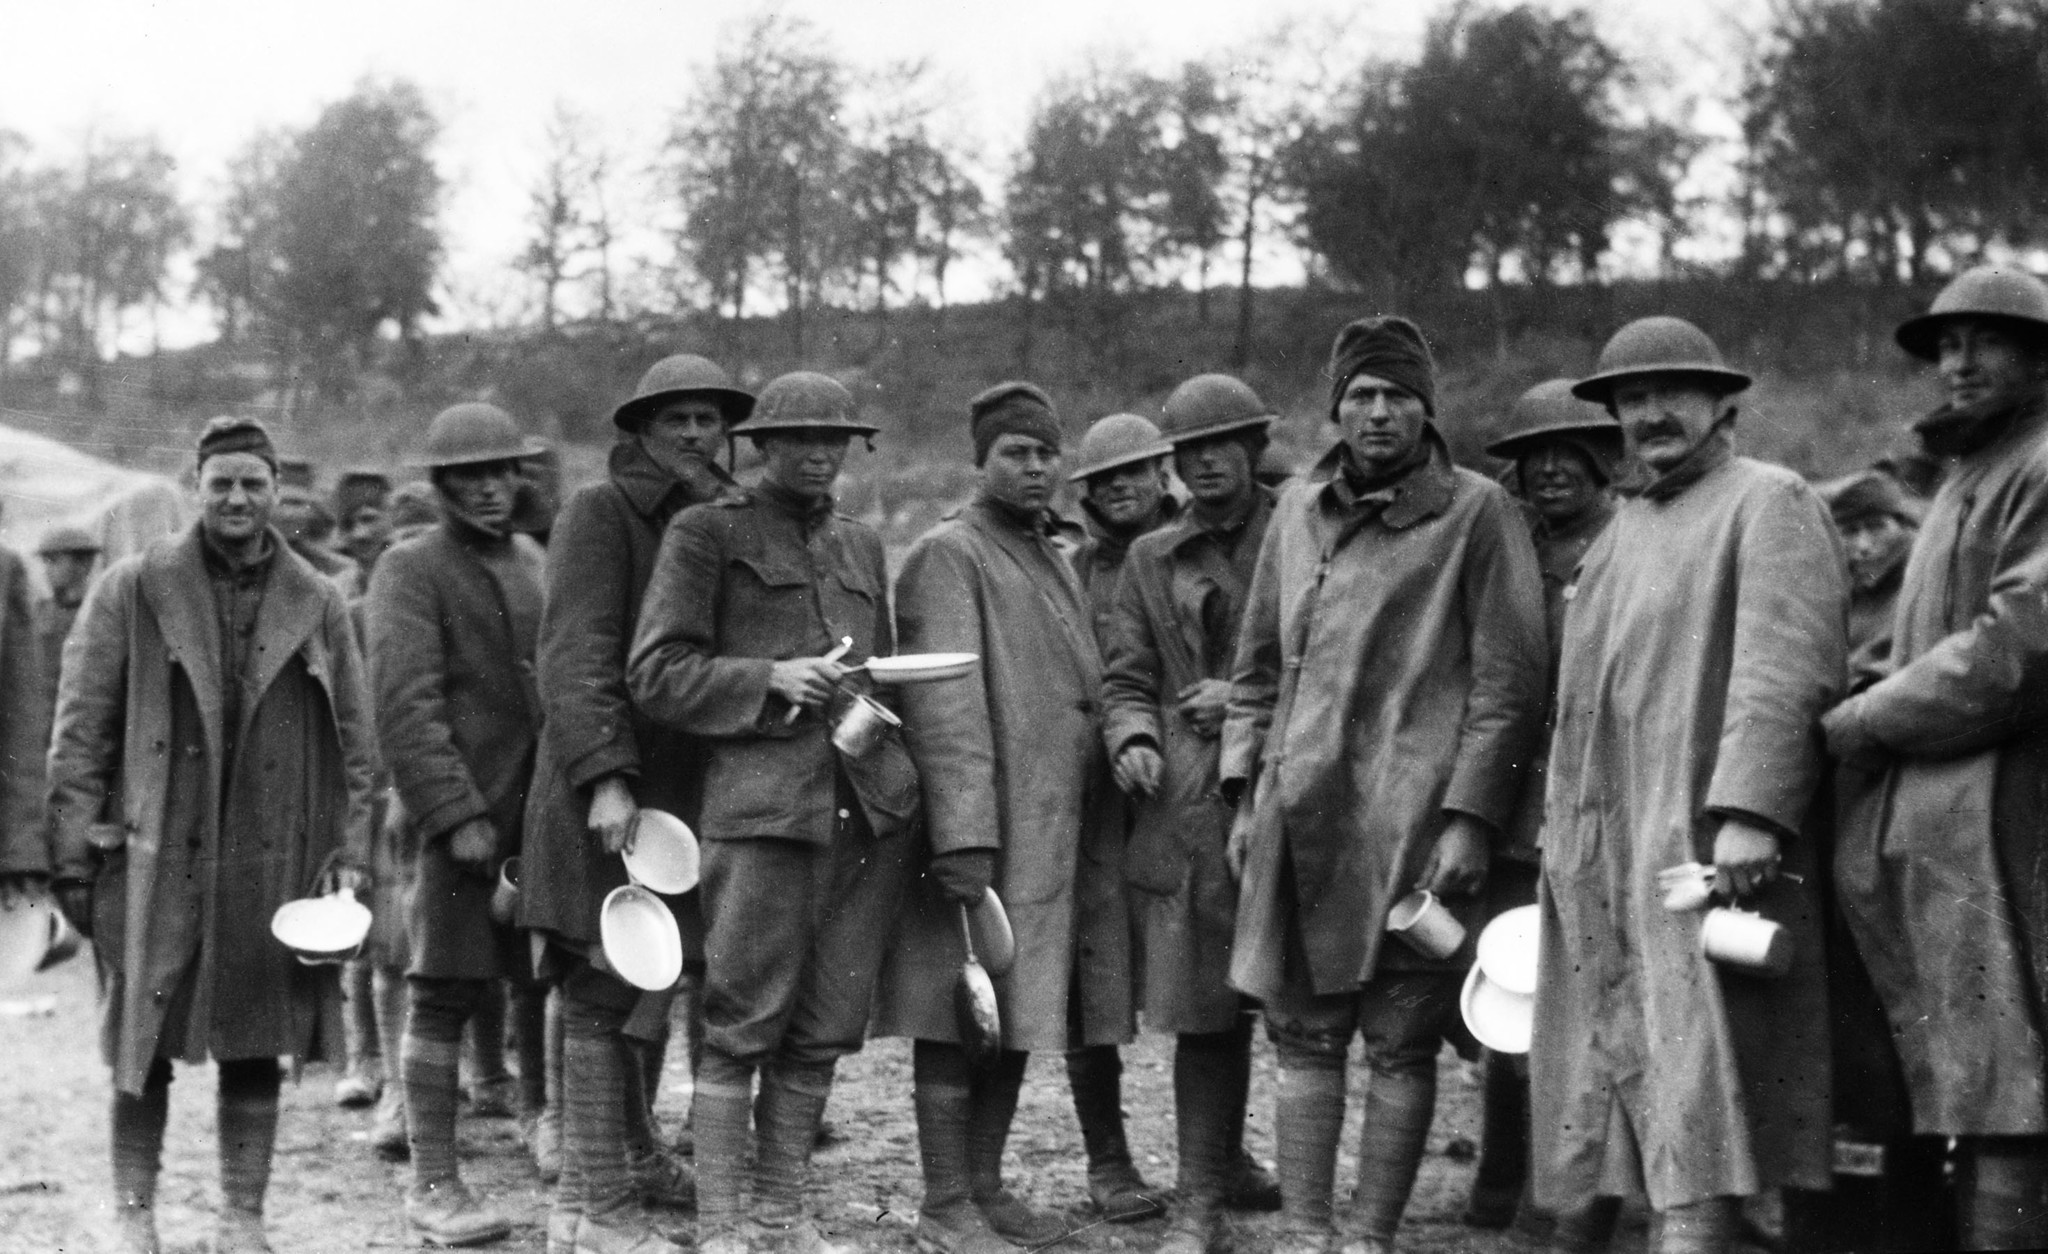 1918: Members of the 91st Infrantry Division, the Wild West Division, in early morning mess back nea